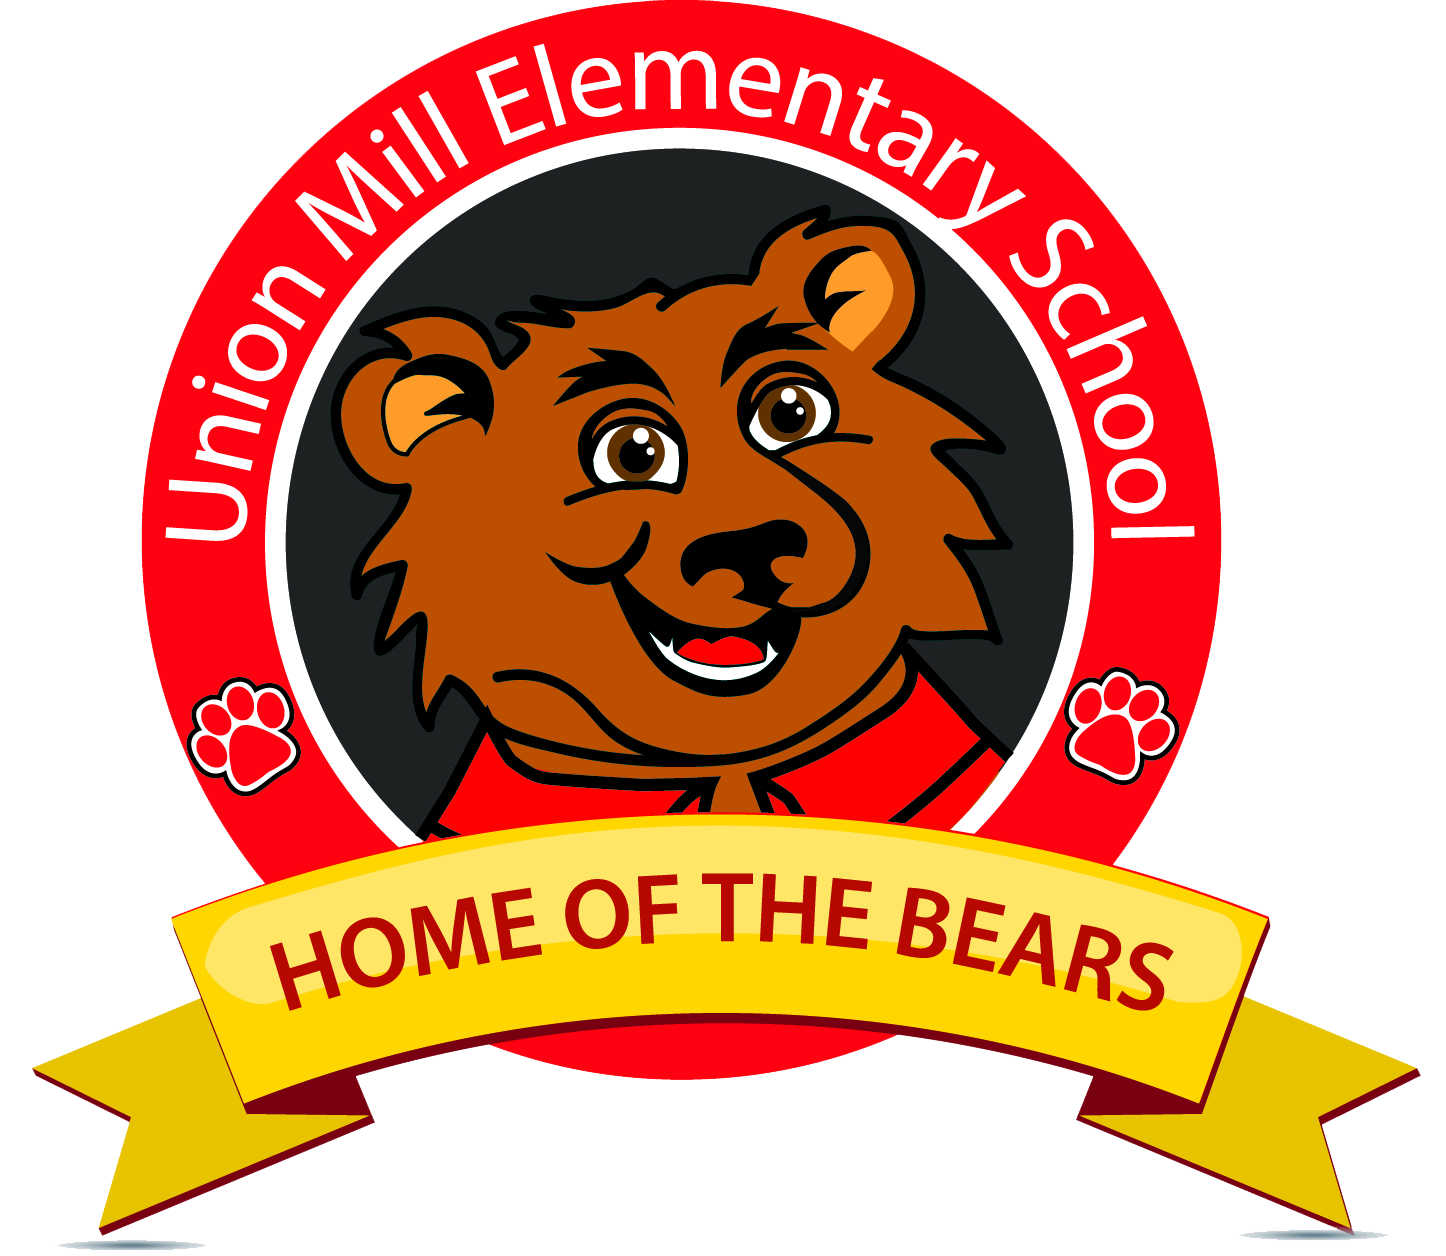 Elementary school principal clipart. Union mill home of